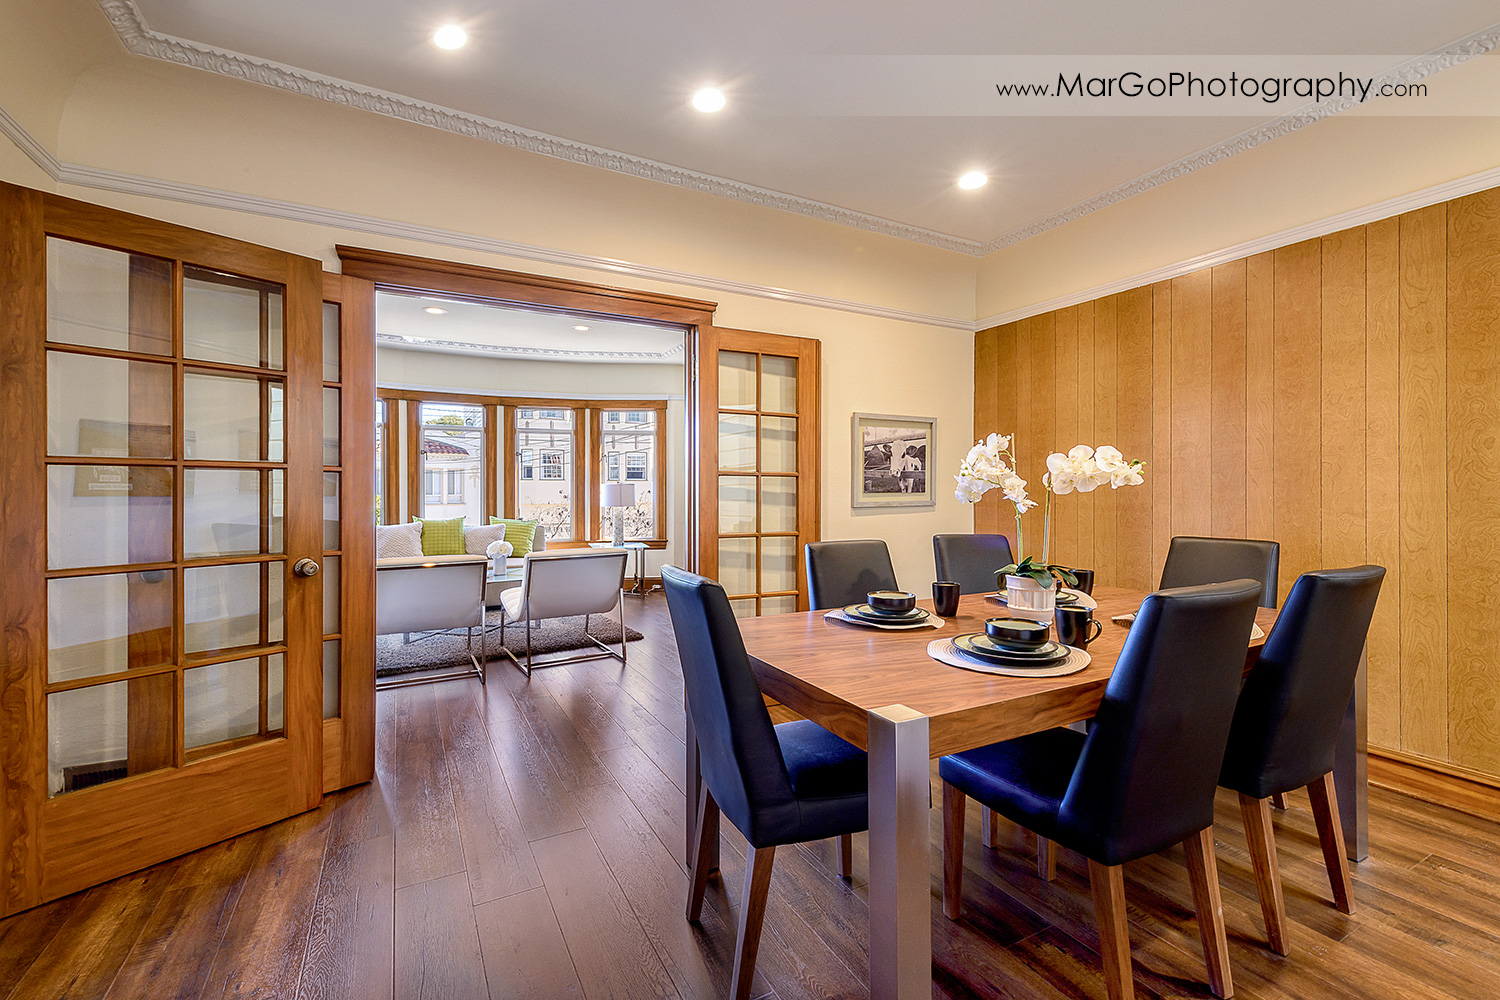 San Francisco house dining room with living room in background - real estate photography